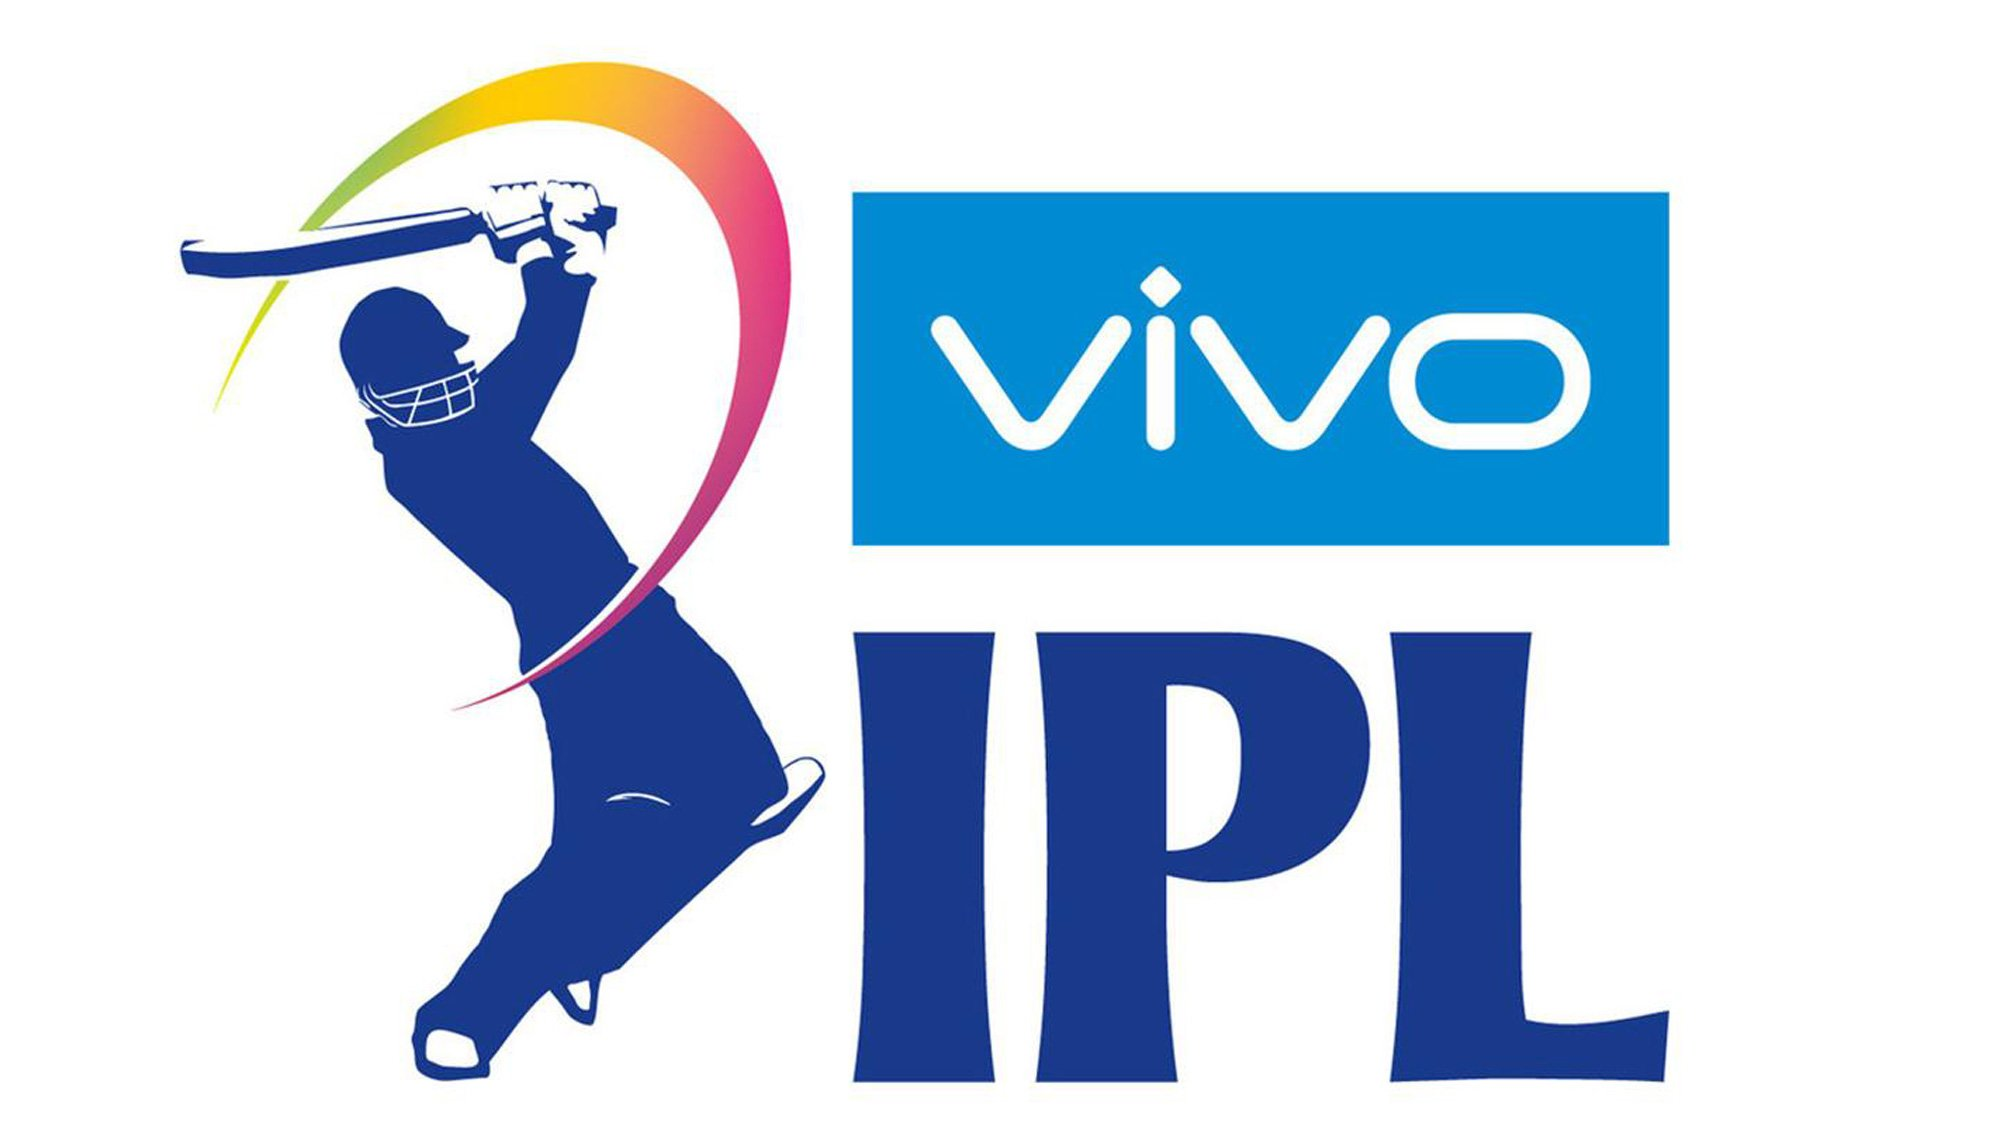 How to watch the 2019 IPL Live Online